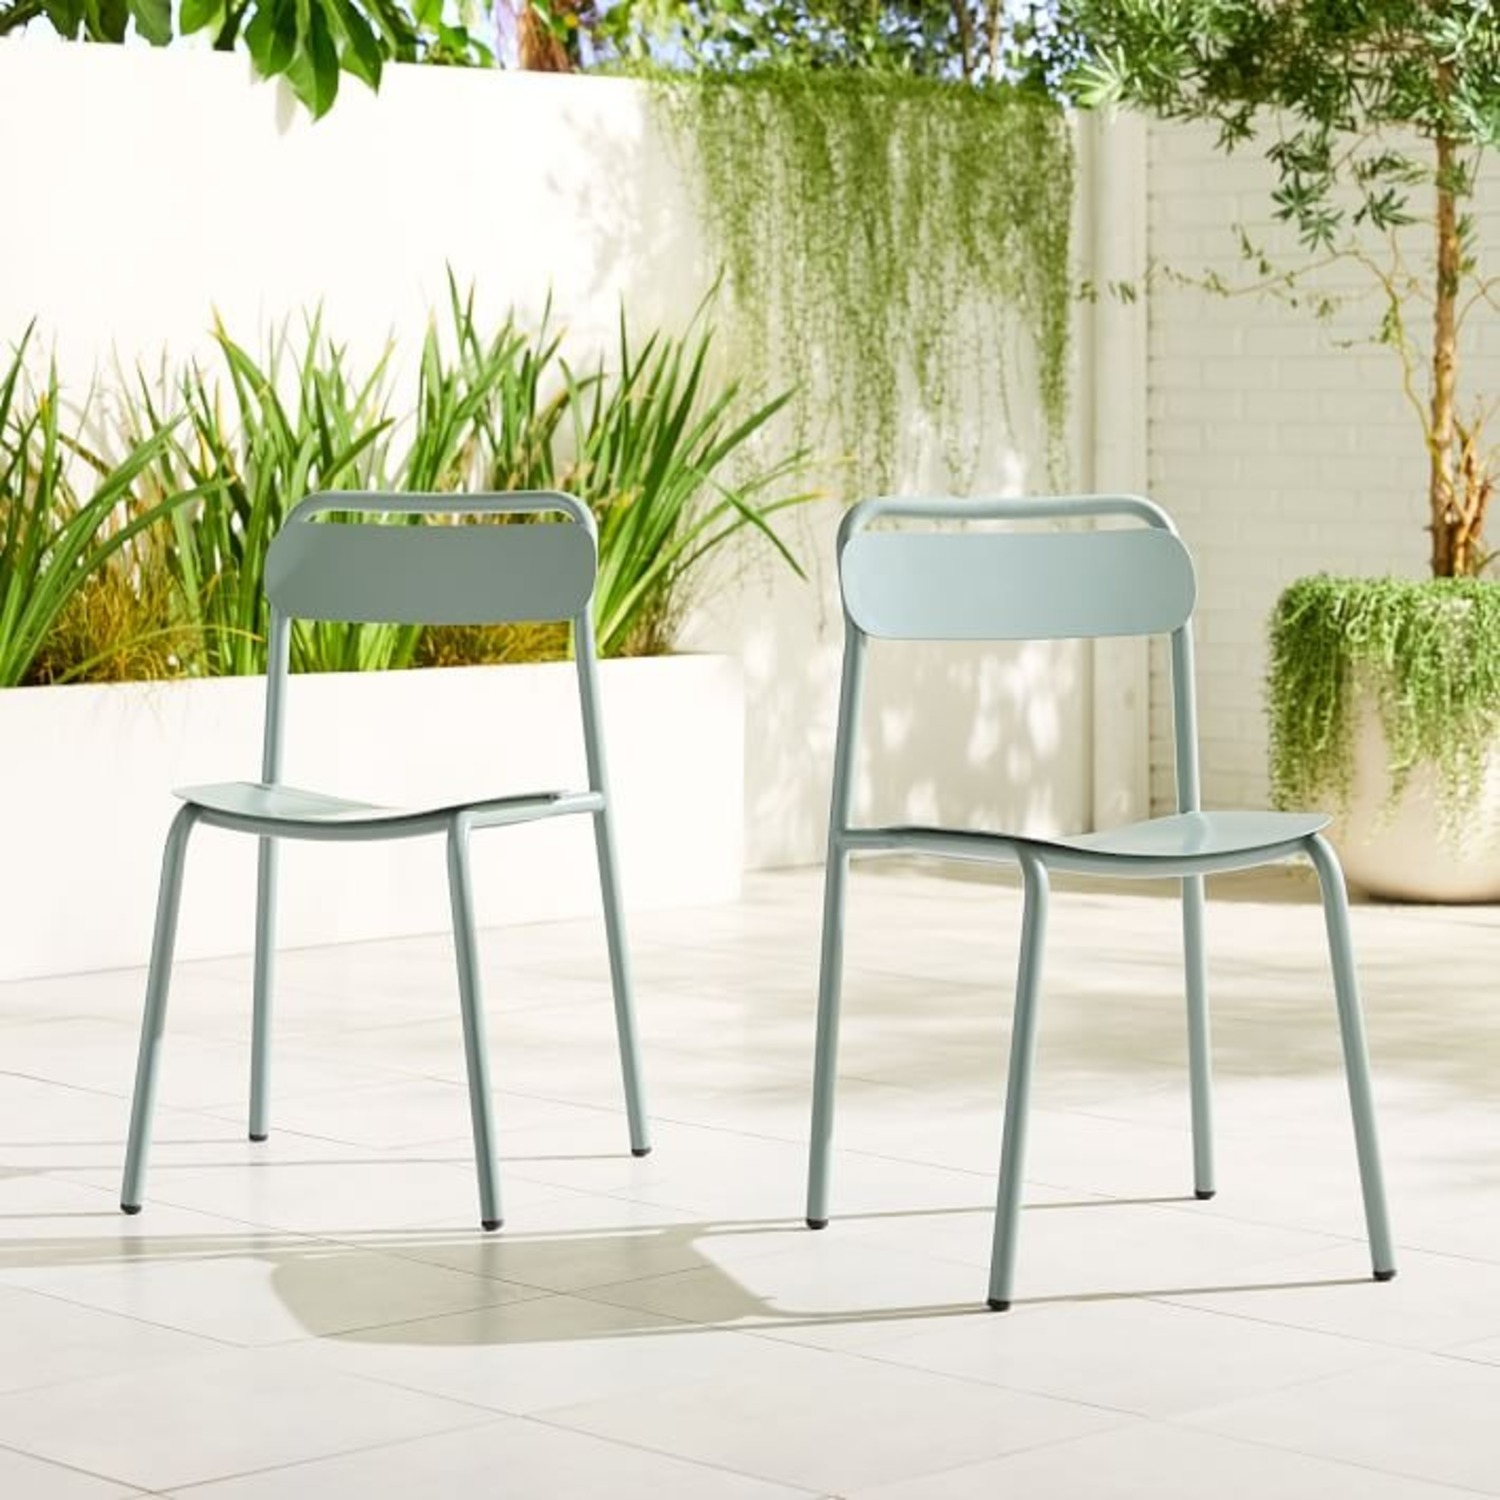 West Elm Outdoor Metal Stacking Chair (Set of 2) - image-2